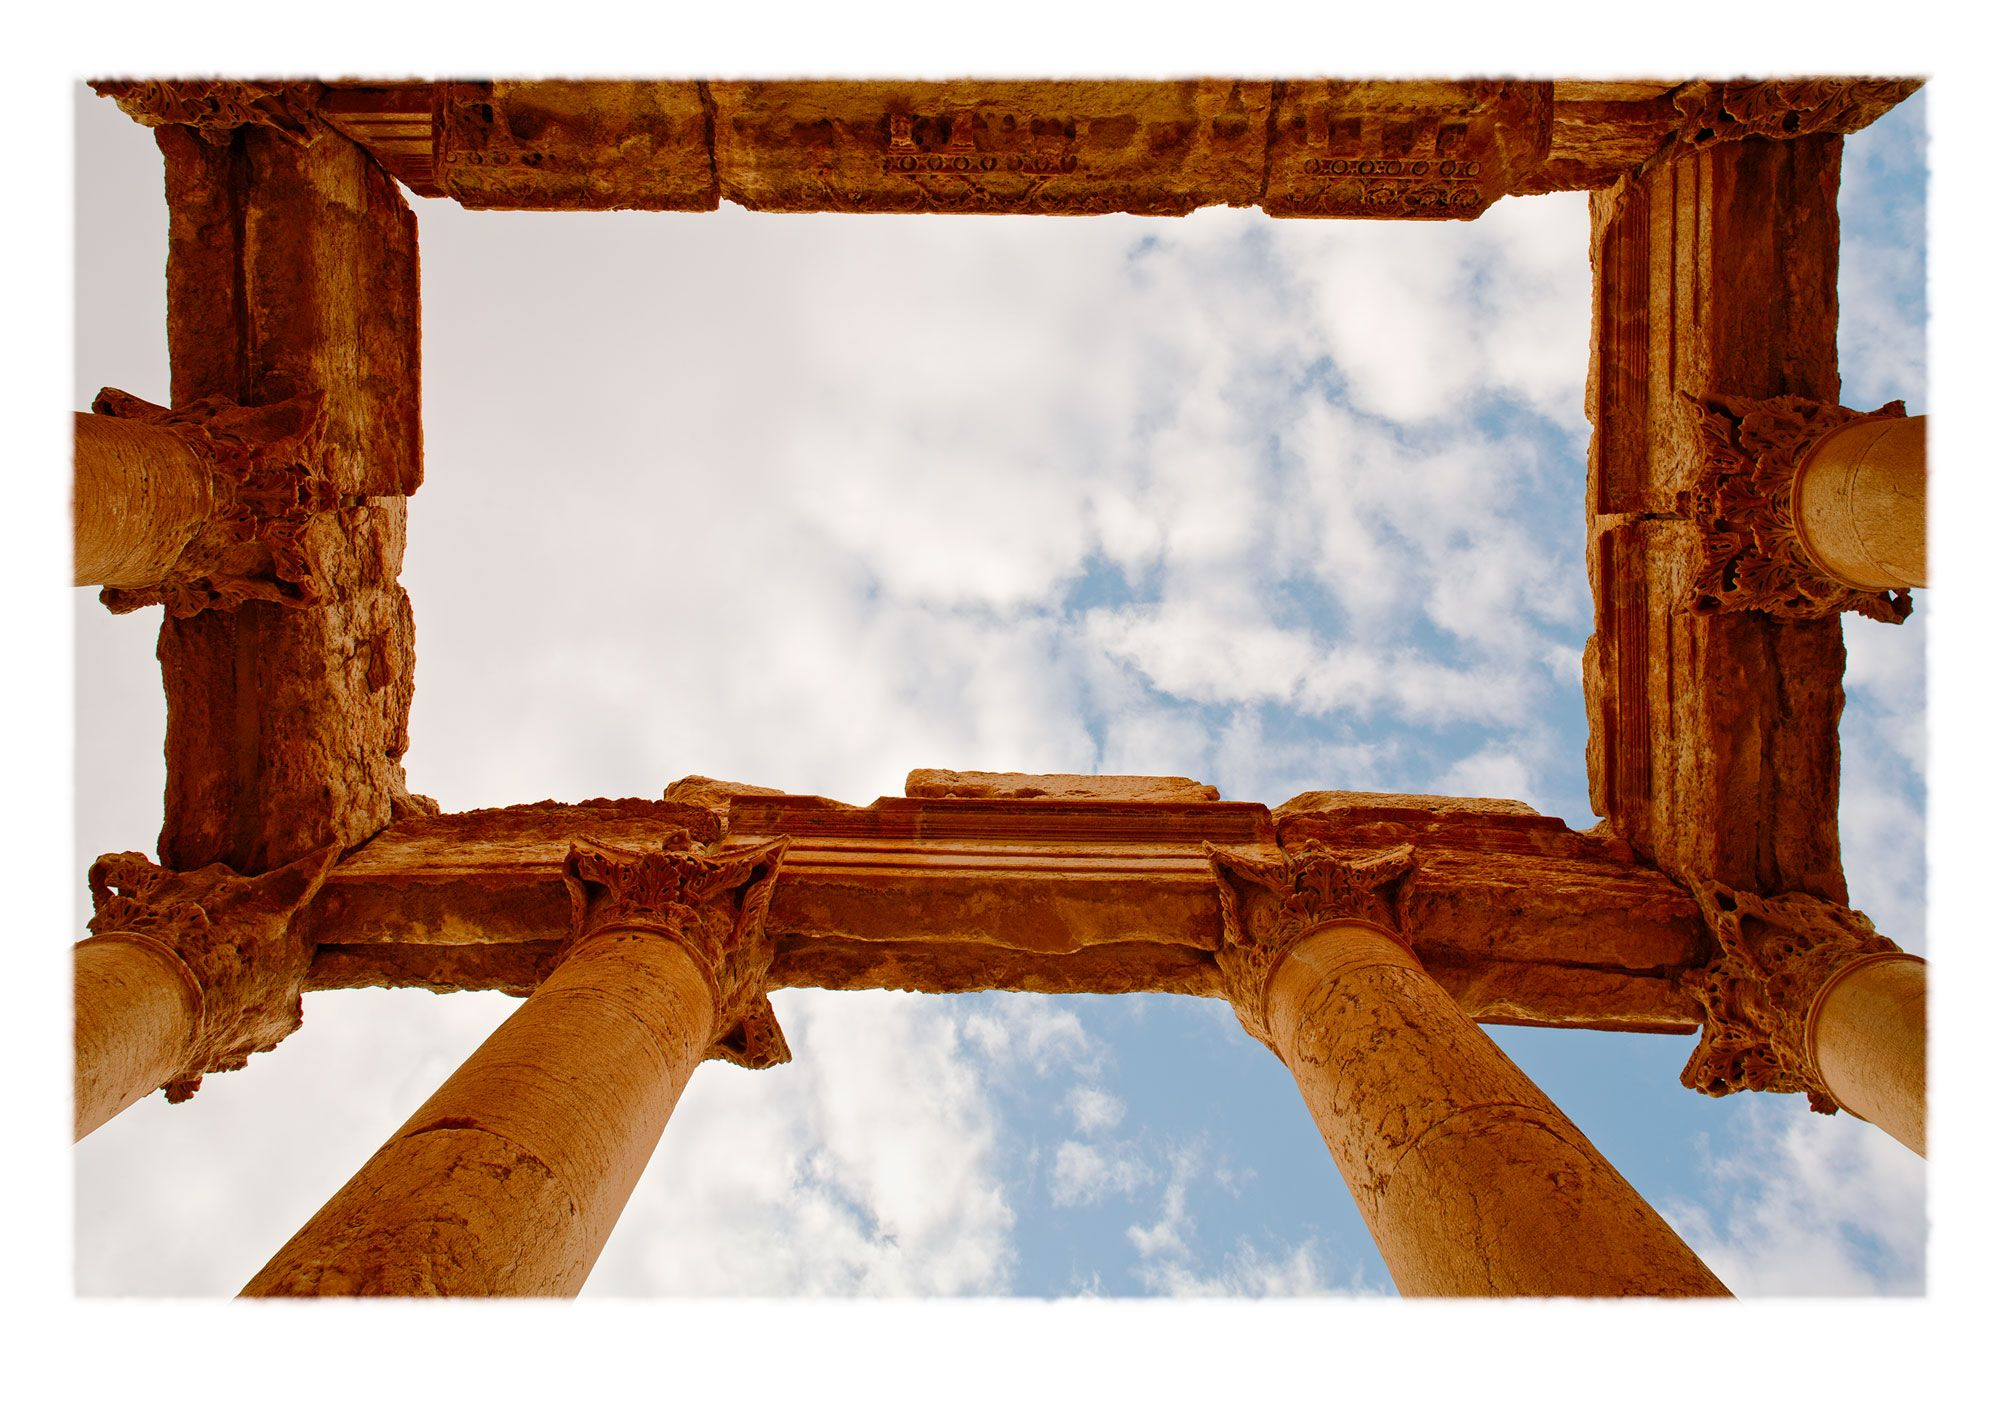 View upwards through Corinthian capitals of furled acanthus leaves with eroded entablature, sky and clouds. Destroyed Palmyra, Syria.